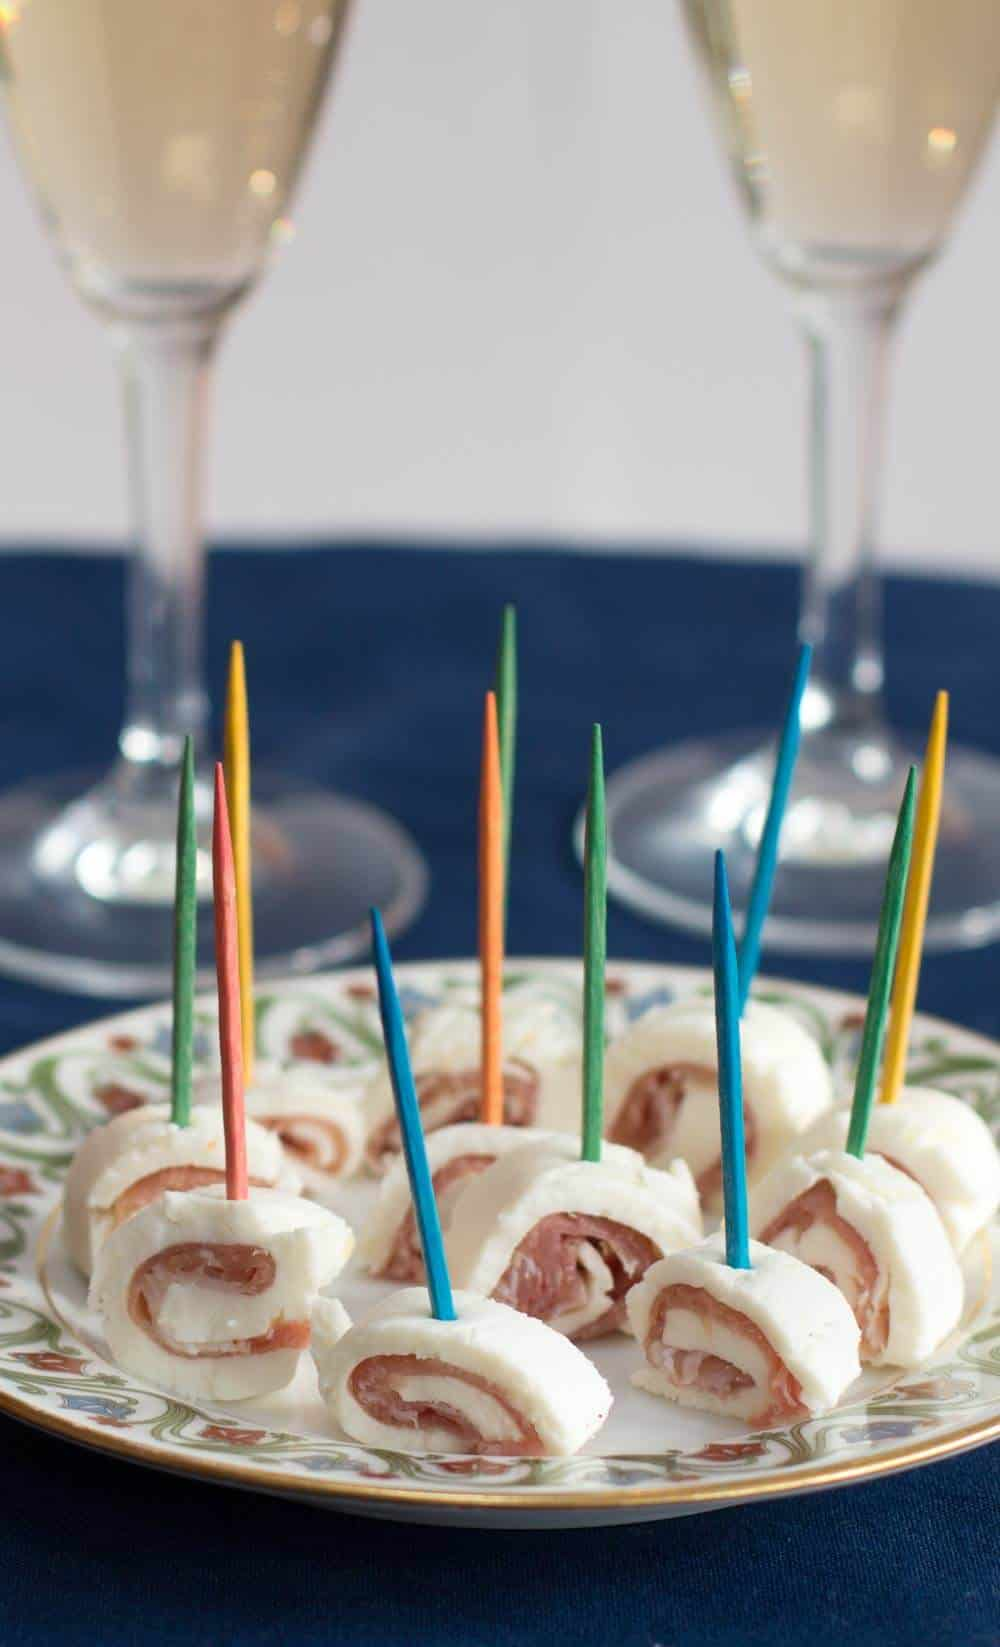 Fancy Prosciutto and Mozzarella Appetizers ready for a party, with champagne flutes.